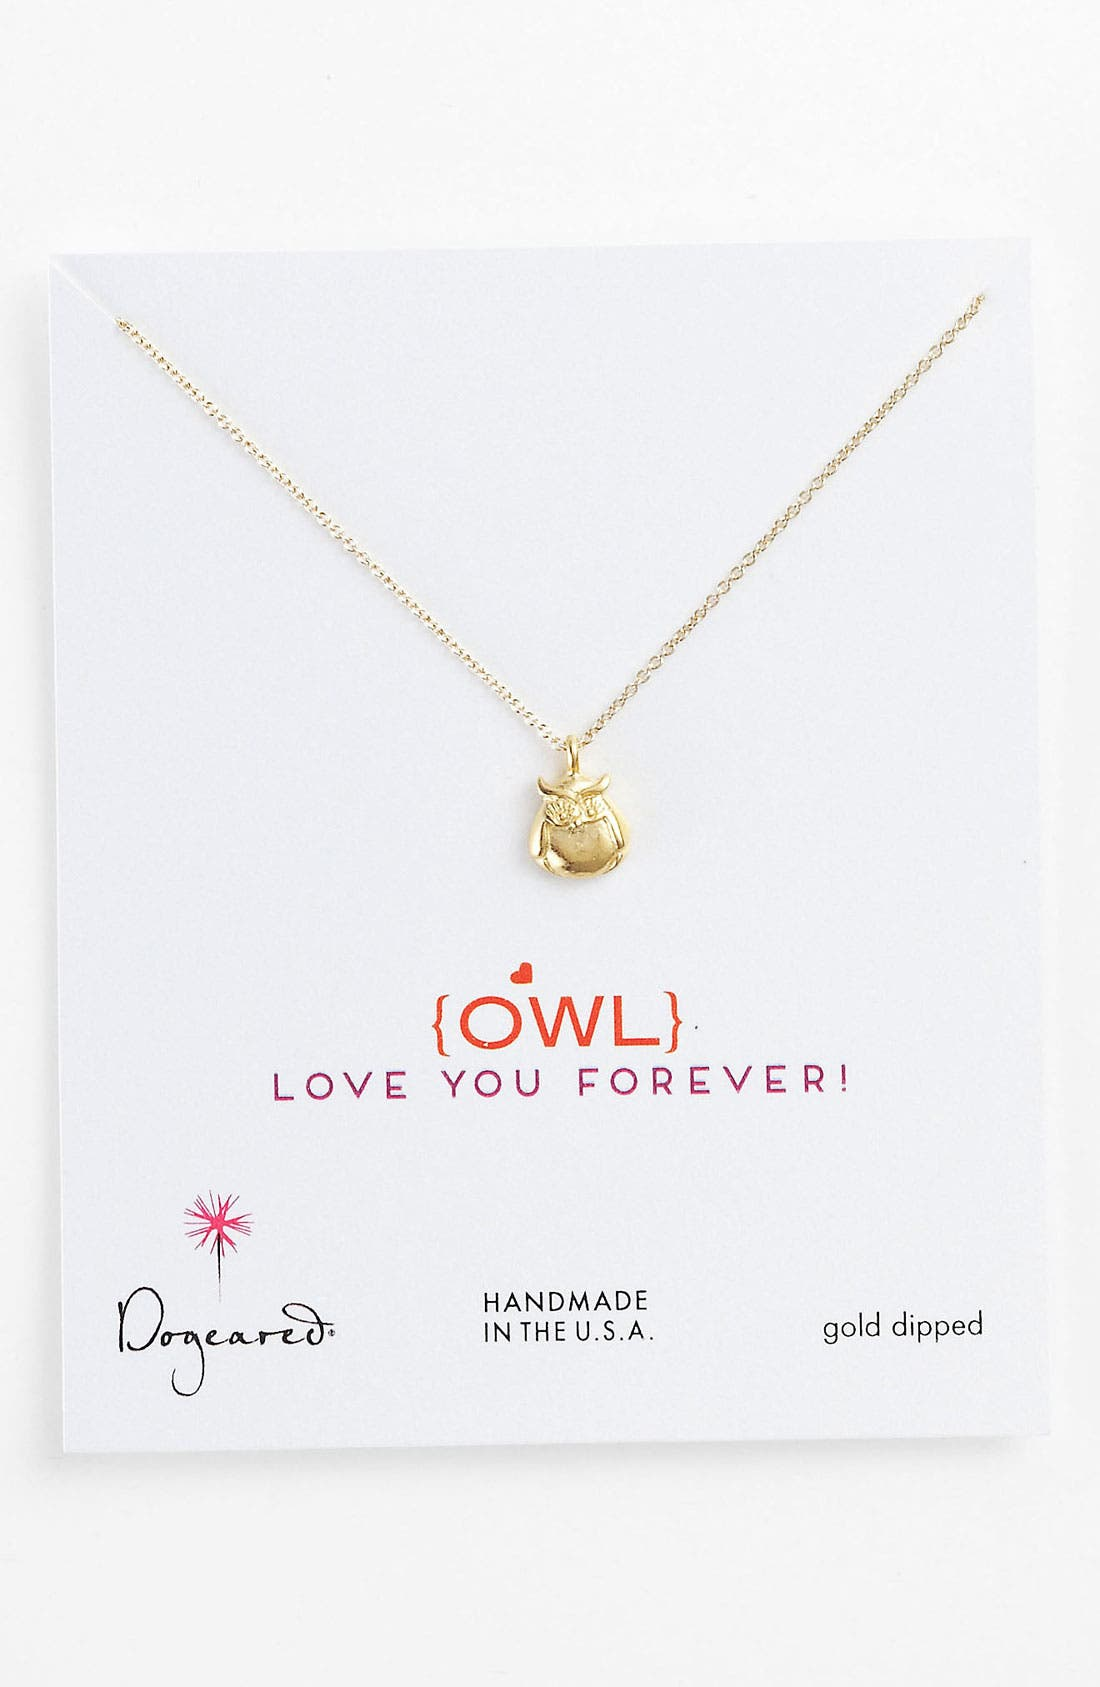 Main Image - Dogeared 'Love - Owl Love You Forever' Pendant Necklace